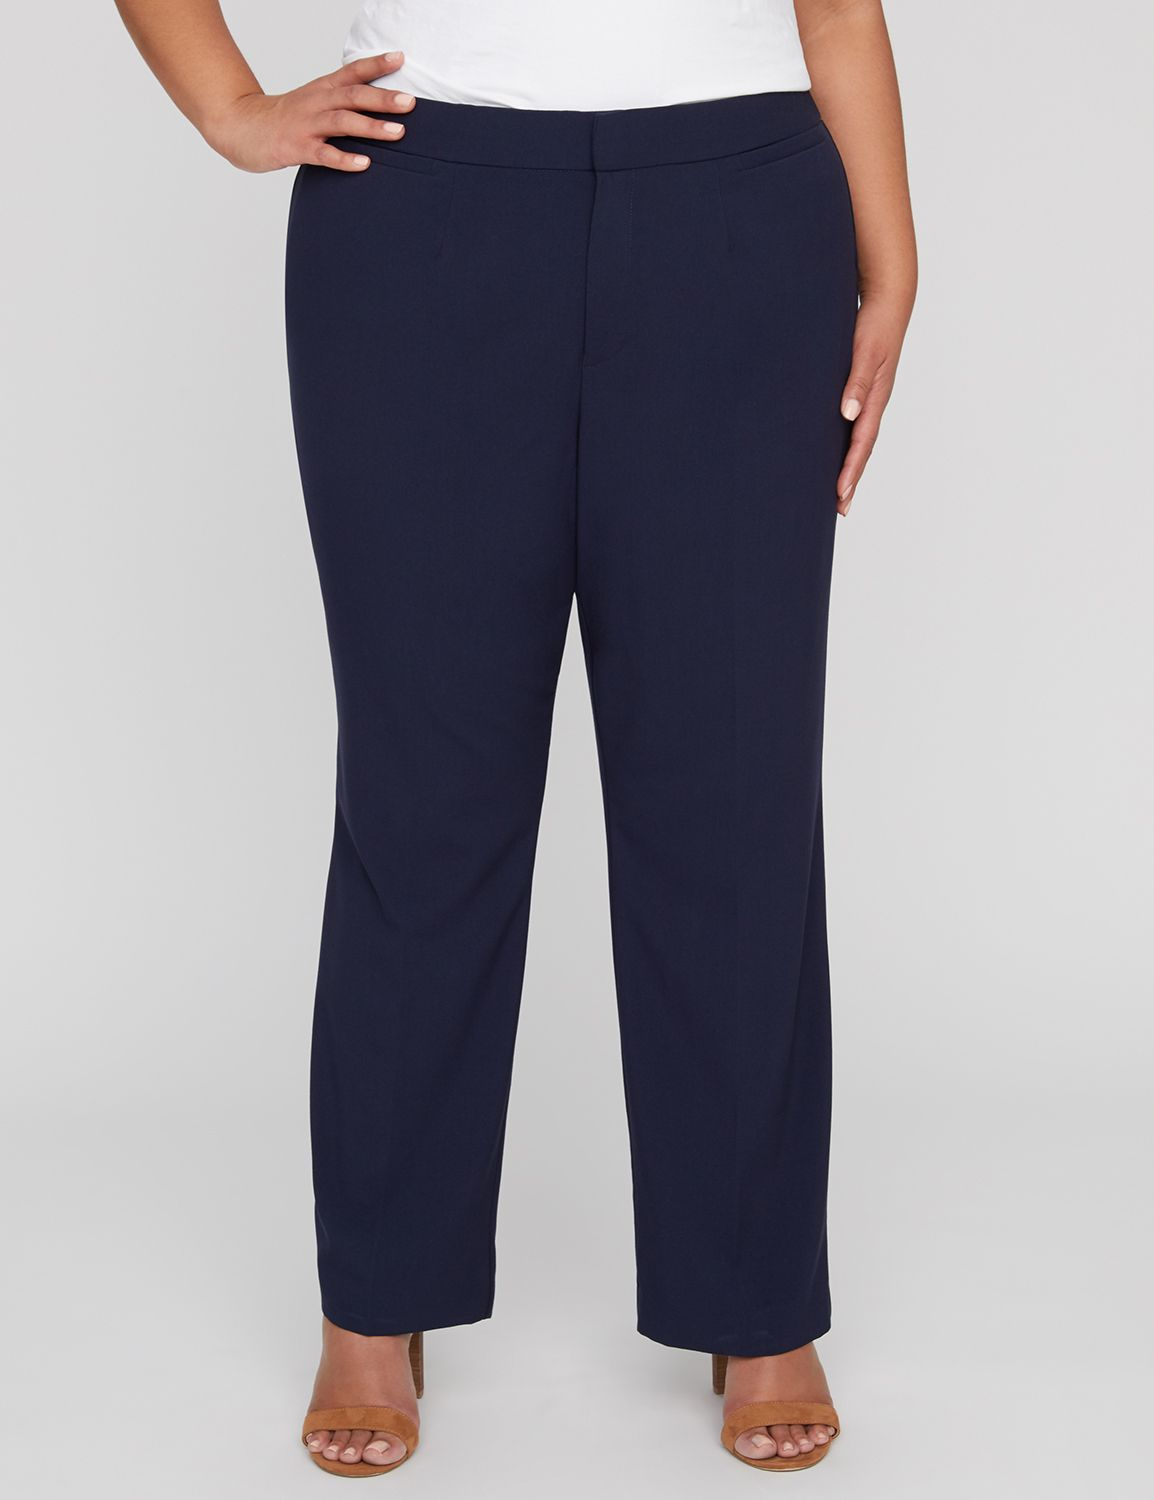 Right Fit Pant (Curvy) Right Fit Pant (Curvy) MP-300043662